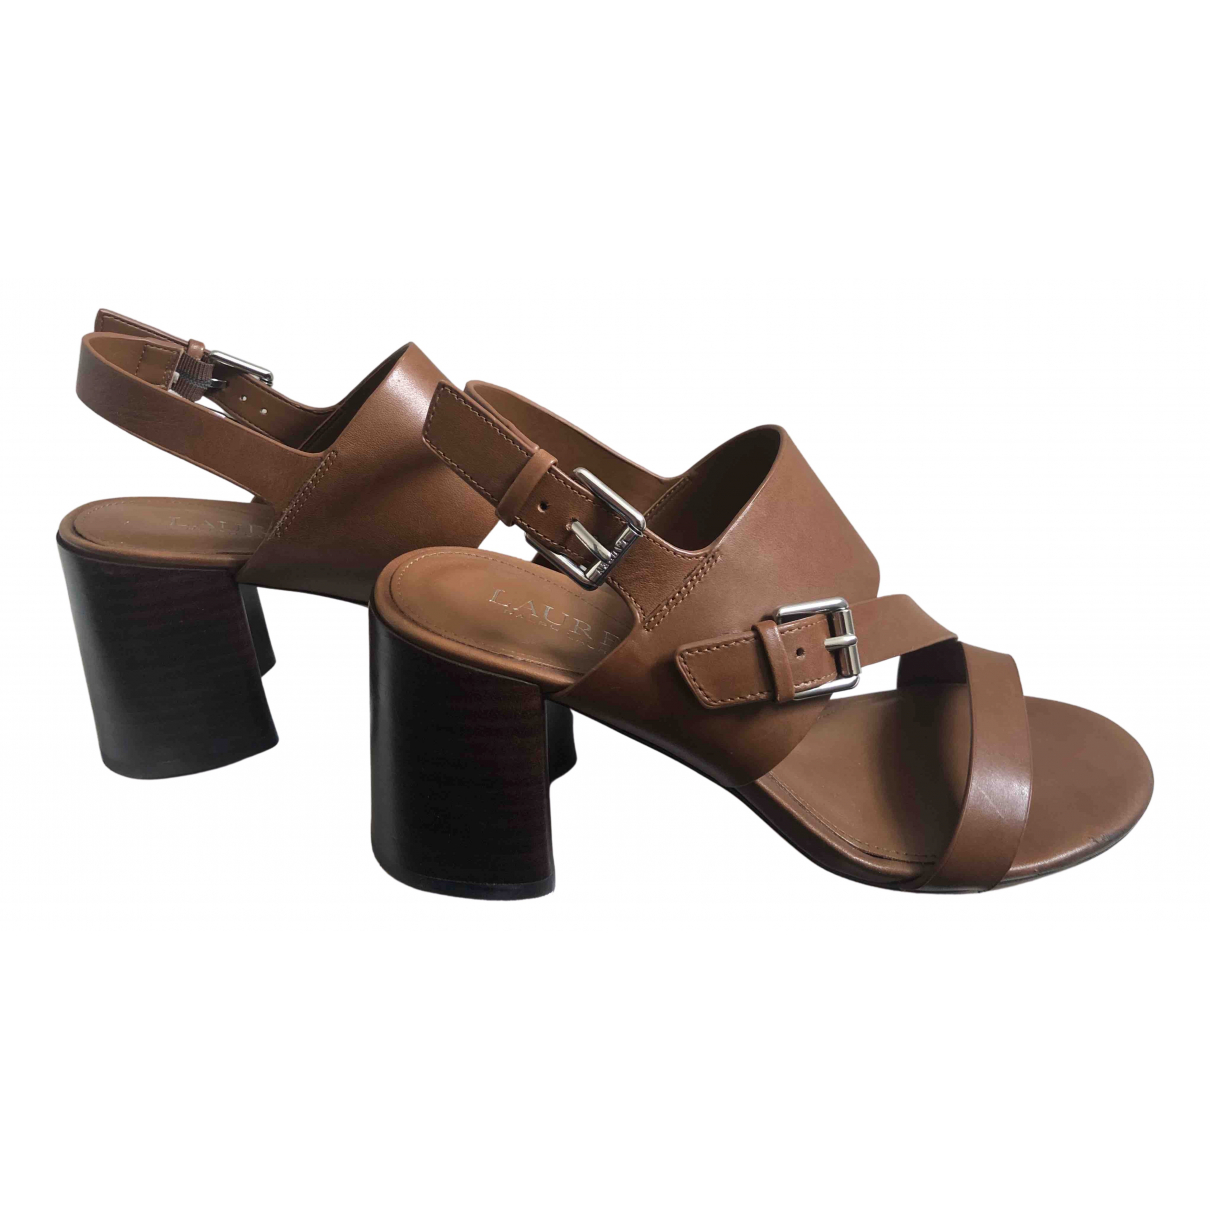 Lauren Ralph Lauren N Brown Leather Sandals for Women 7 US